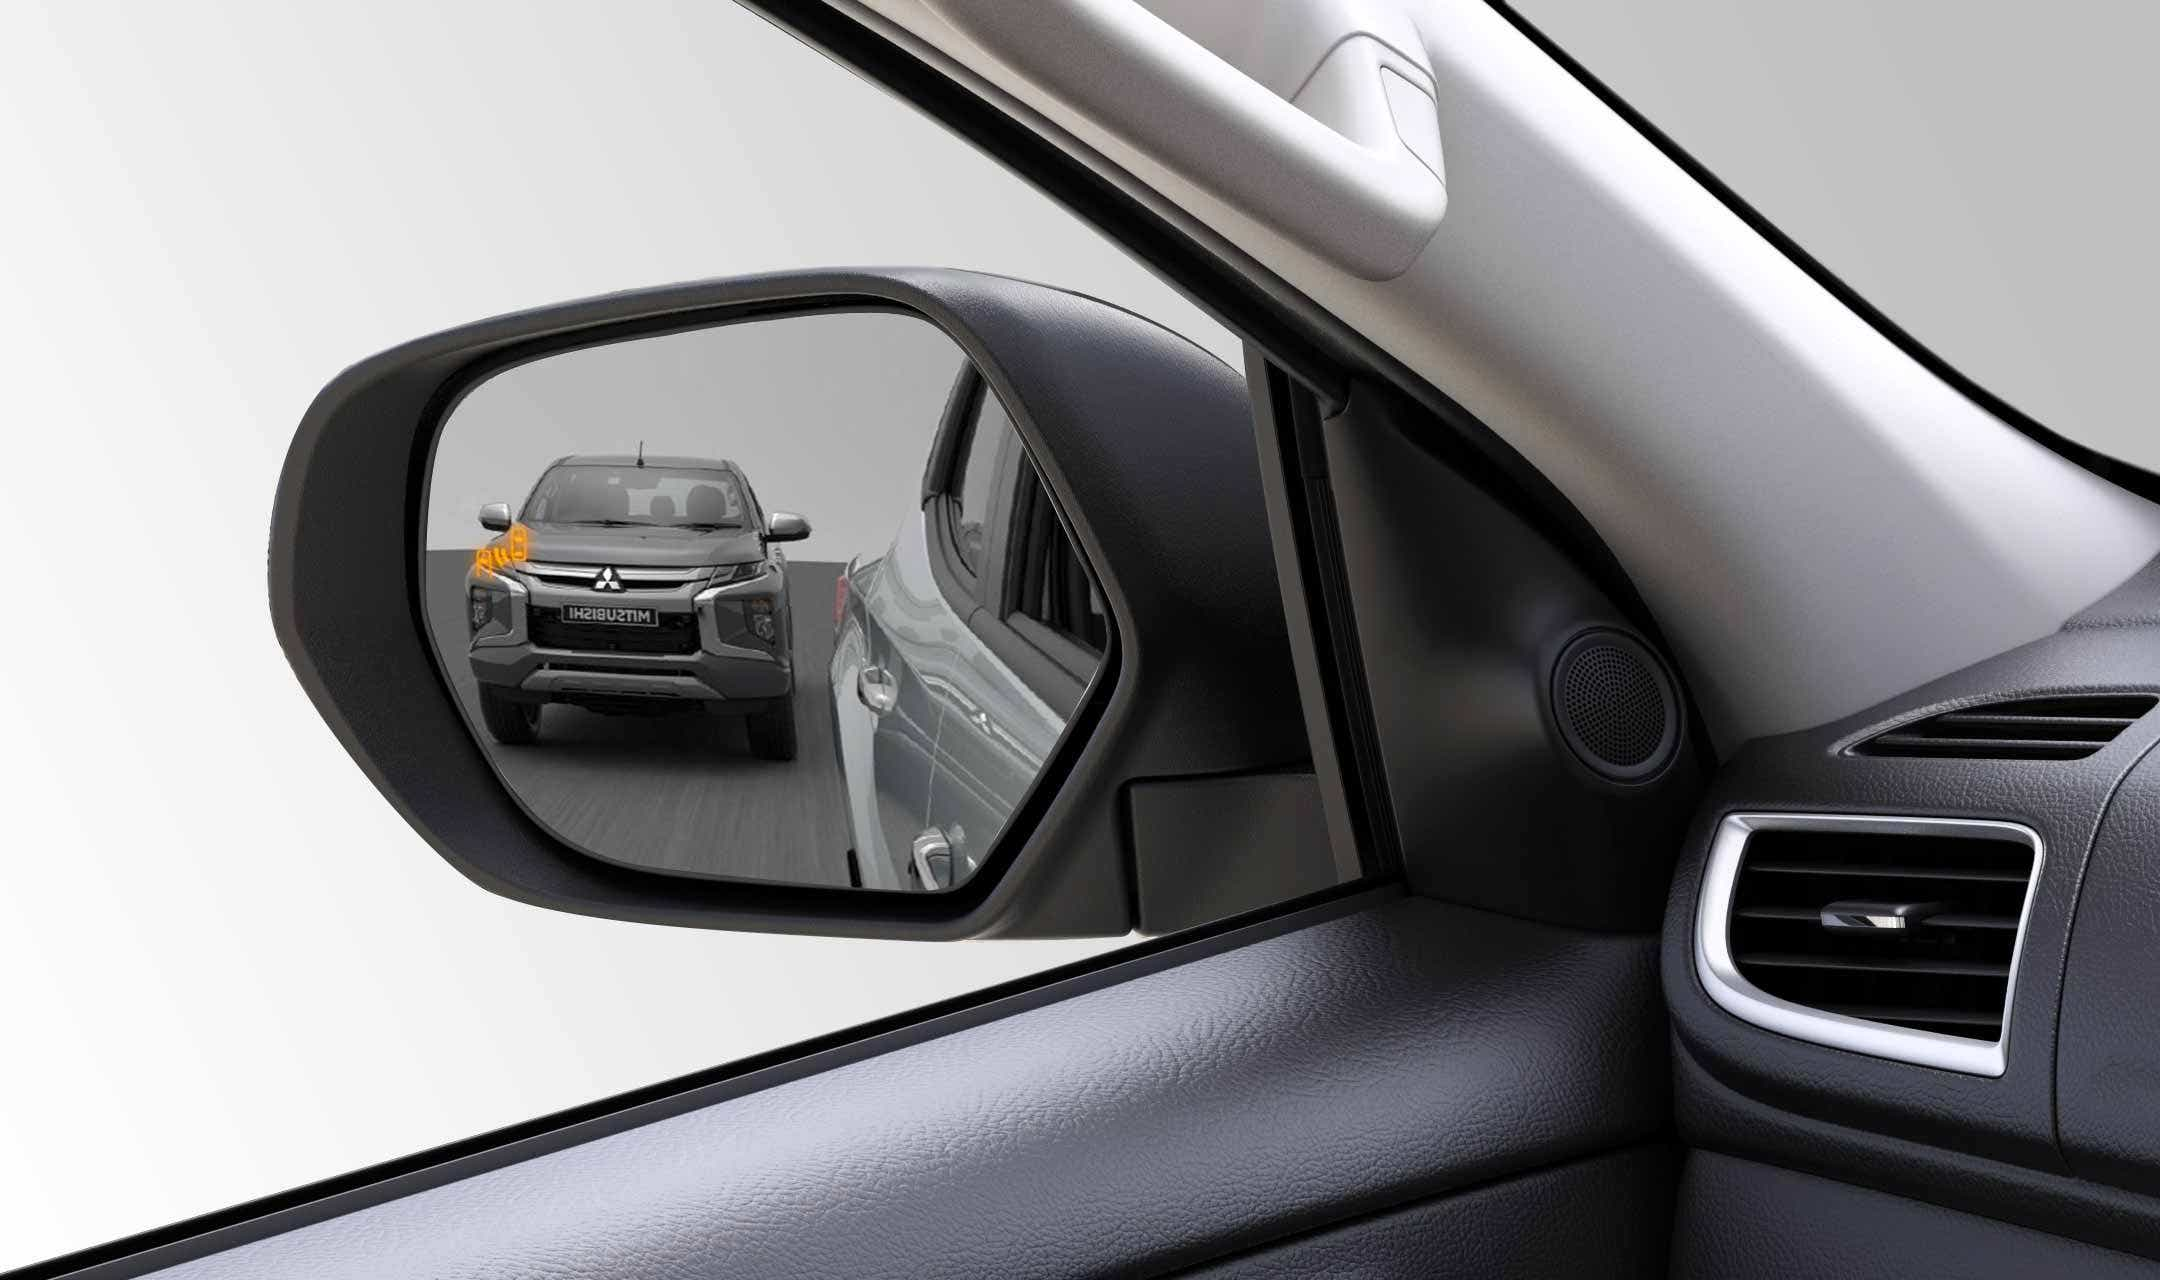 BLIND SPOT WARNING WITH LANE CHANGE ASSIST - BSW WITH LCA